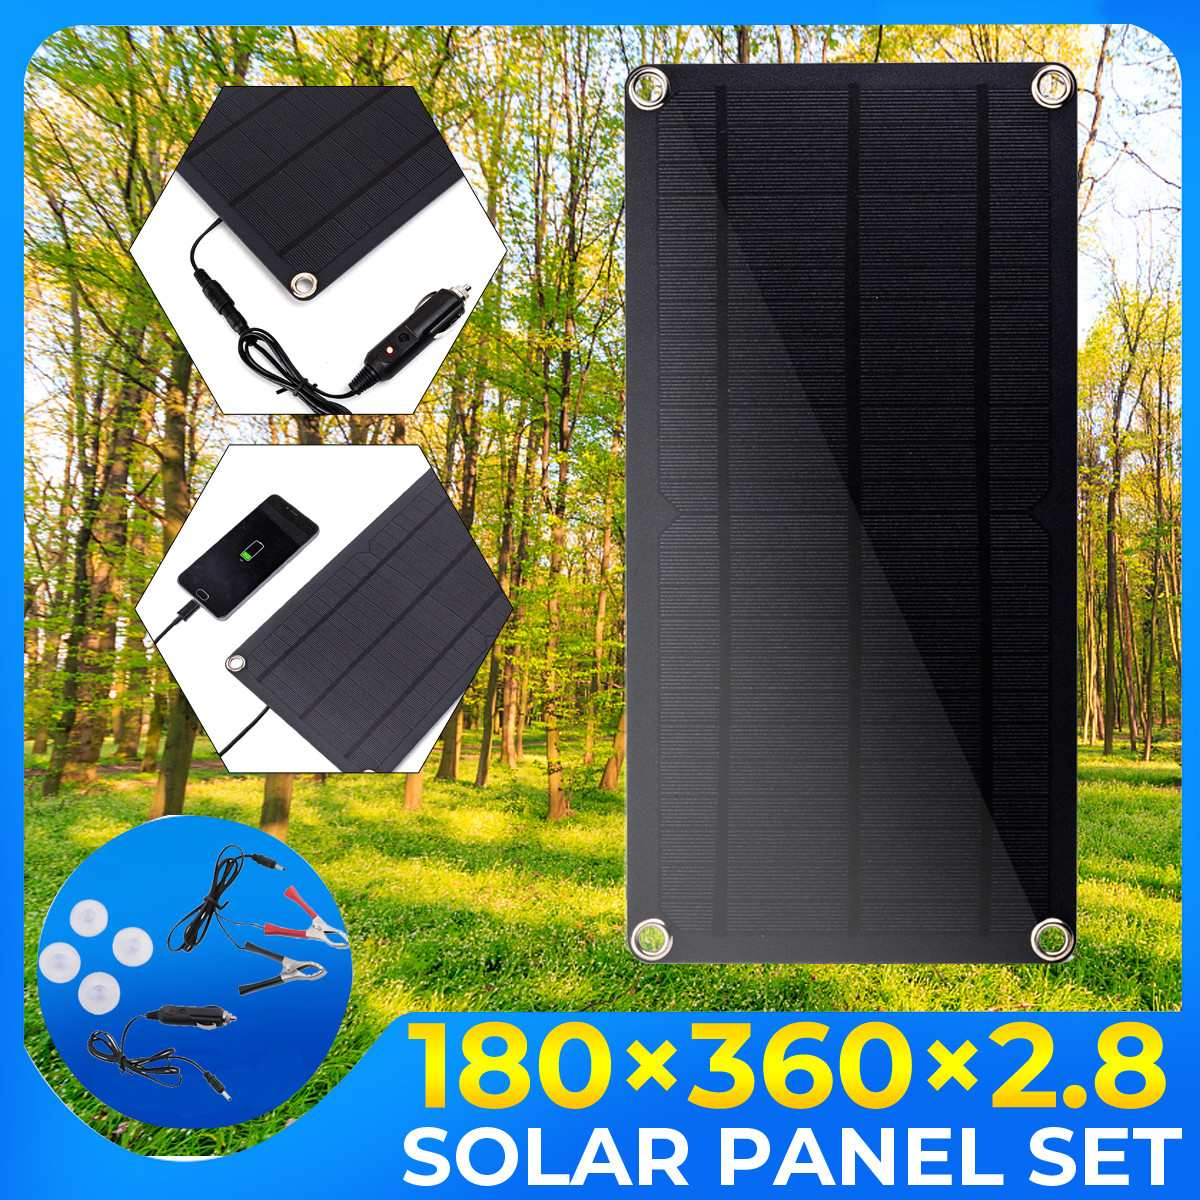 NEW 80W Sun Power Solar Cells Charger 12V USB Output Devices Portable Solar Panels for Smartphones Laptop Tablets Outdoor